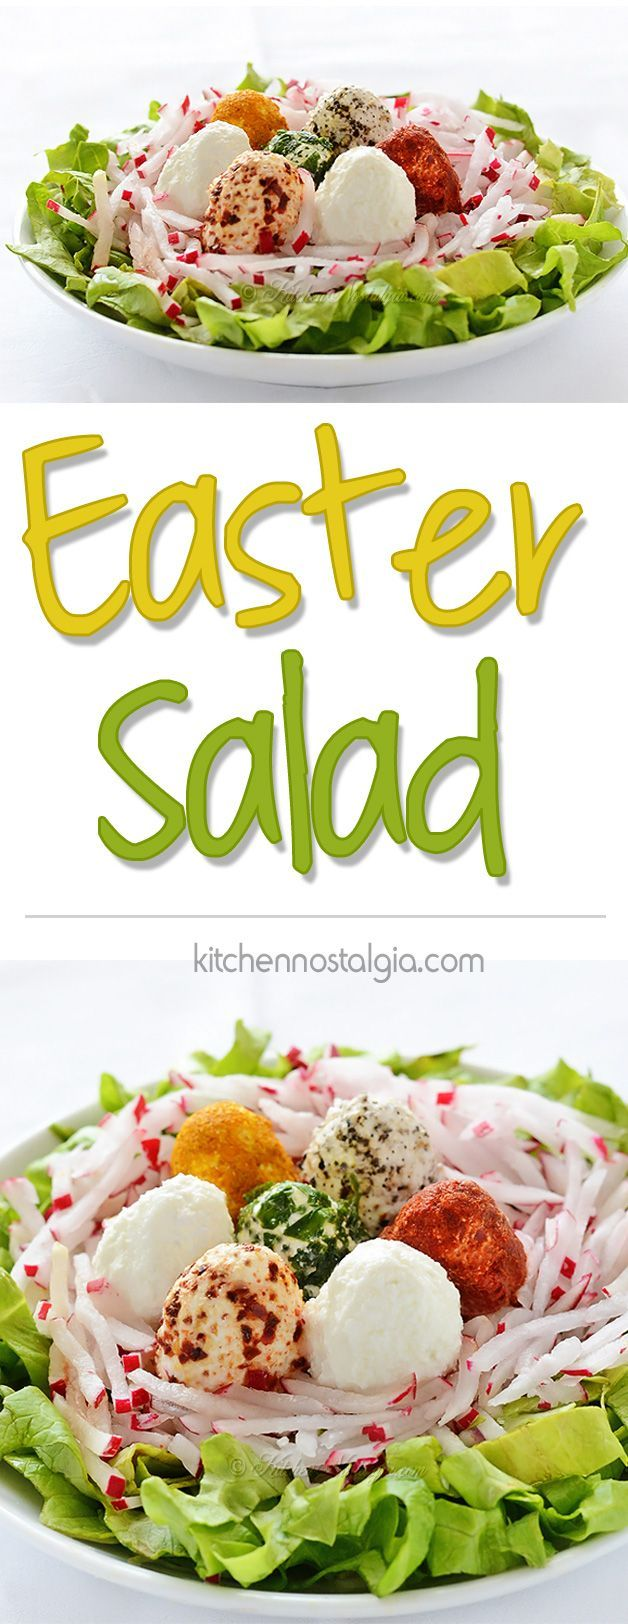 Easter Salad Recipe - idea for decorating your Easter table; kids can help you make it - kitchennostalgia.com